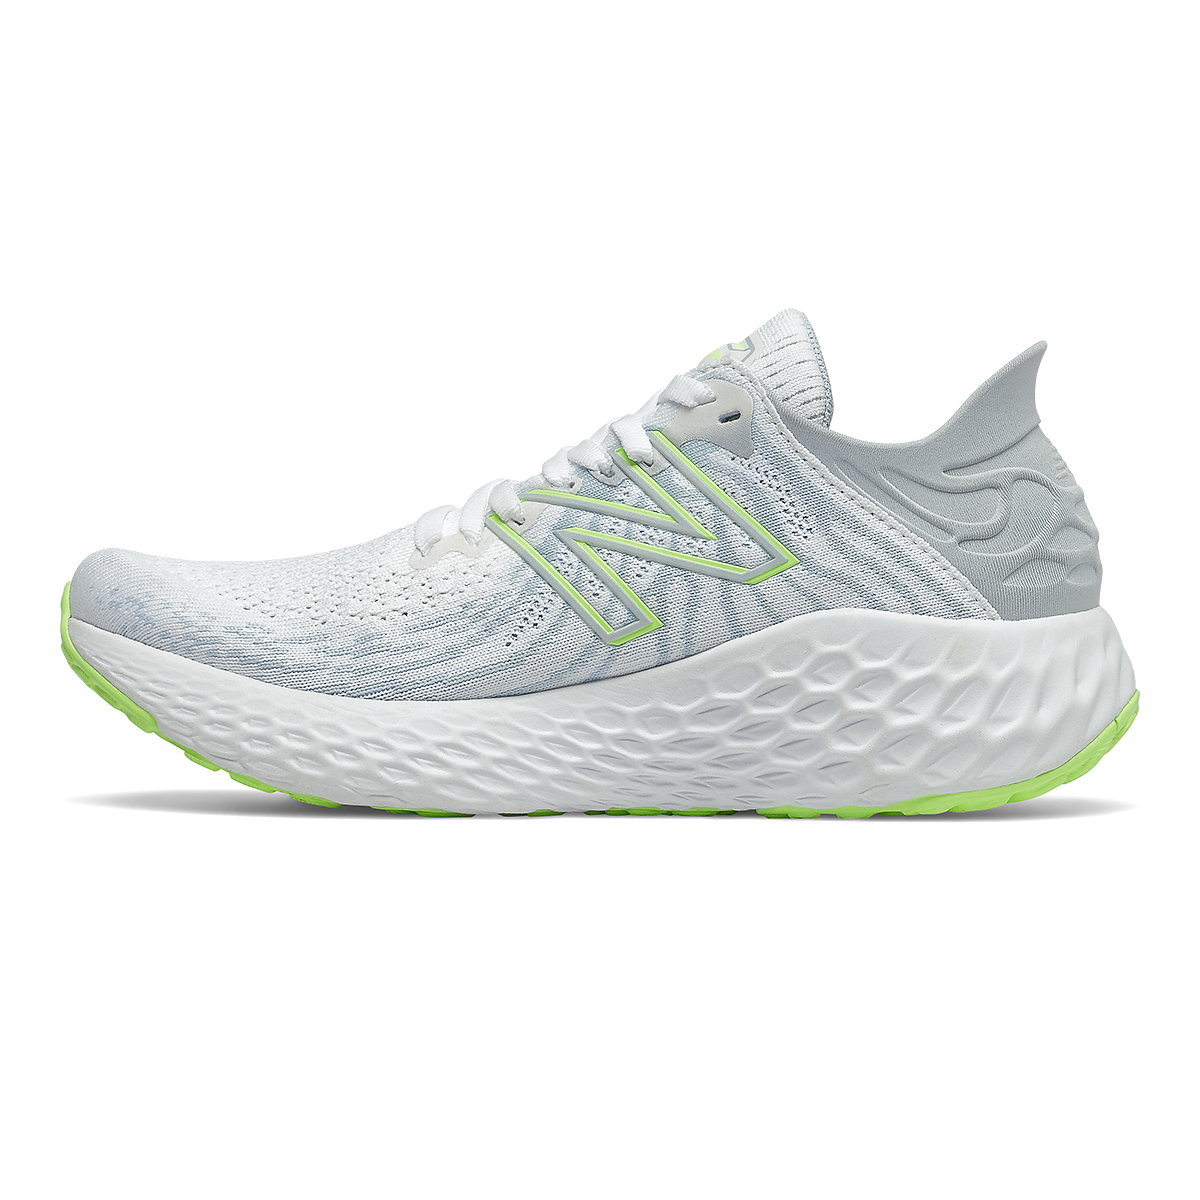 Women's New Balance 1080v11 Running Shoe - Color: White/Bleached Lime Glo - Size: 5 - Width: Narrow, White/Bleached Lime Glo, large, image 2